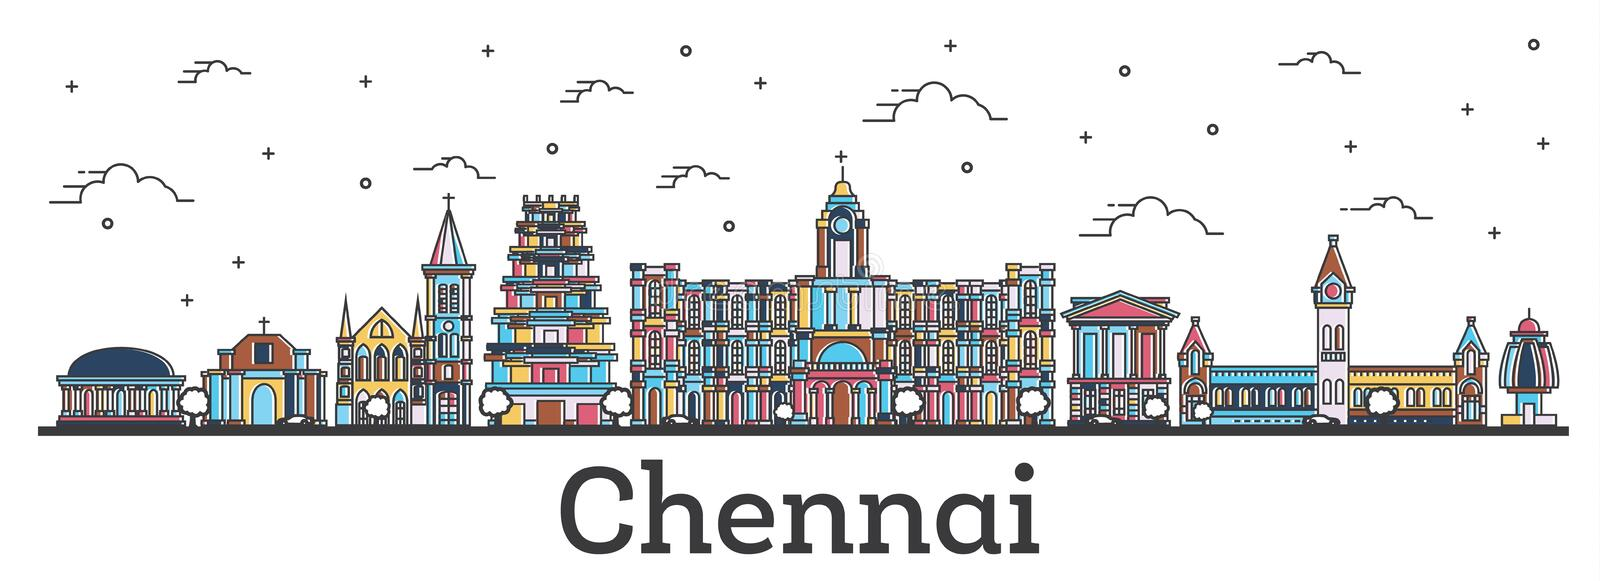 Outline Chennai India City Skyline with Color Buildings Isolated. On White. Vector Illustration. Chennai Cityscape with Landmarks royalty free illustration